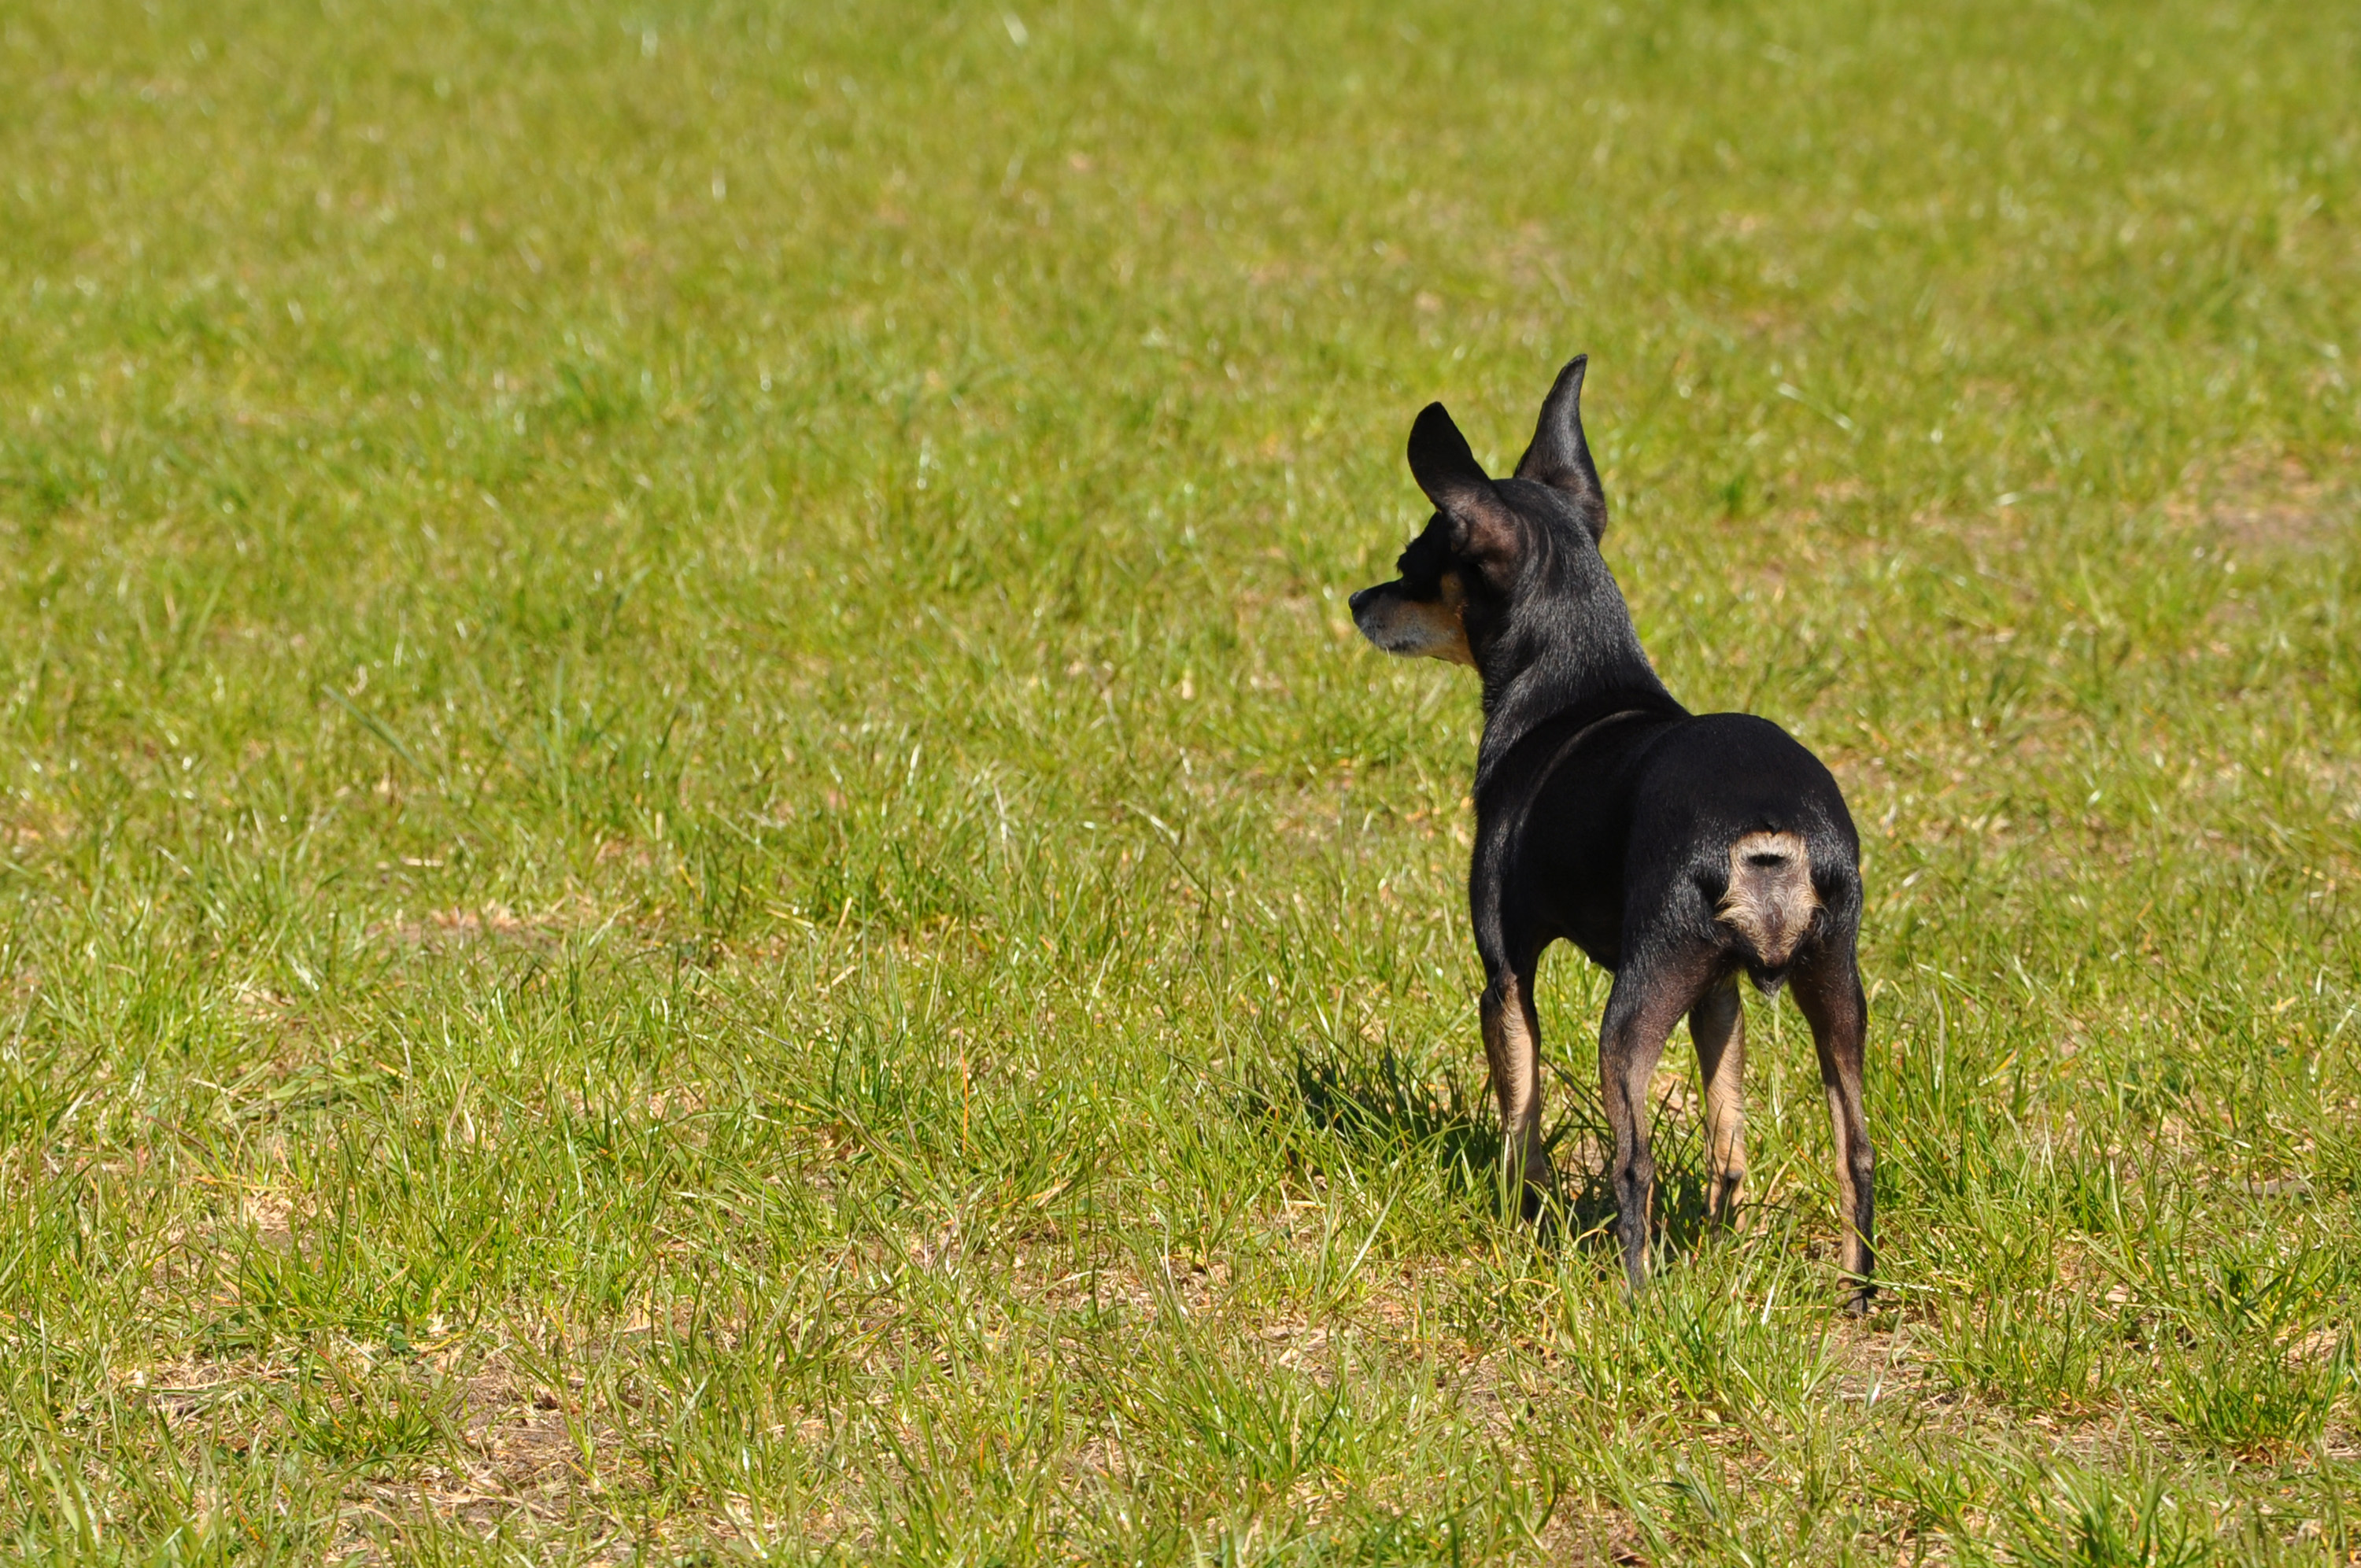 Toy terrier, Animal, Little, Tiny, Terrier, HQ Photo